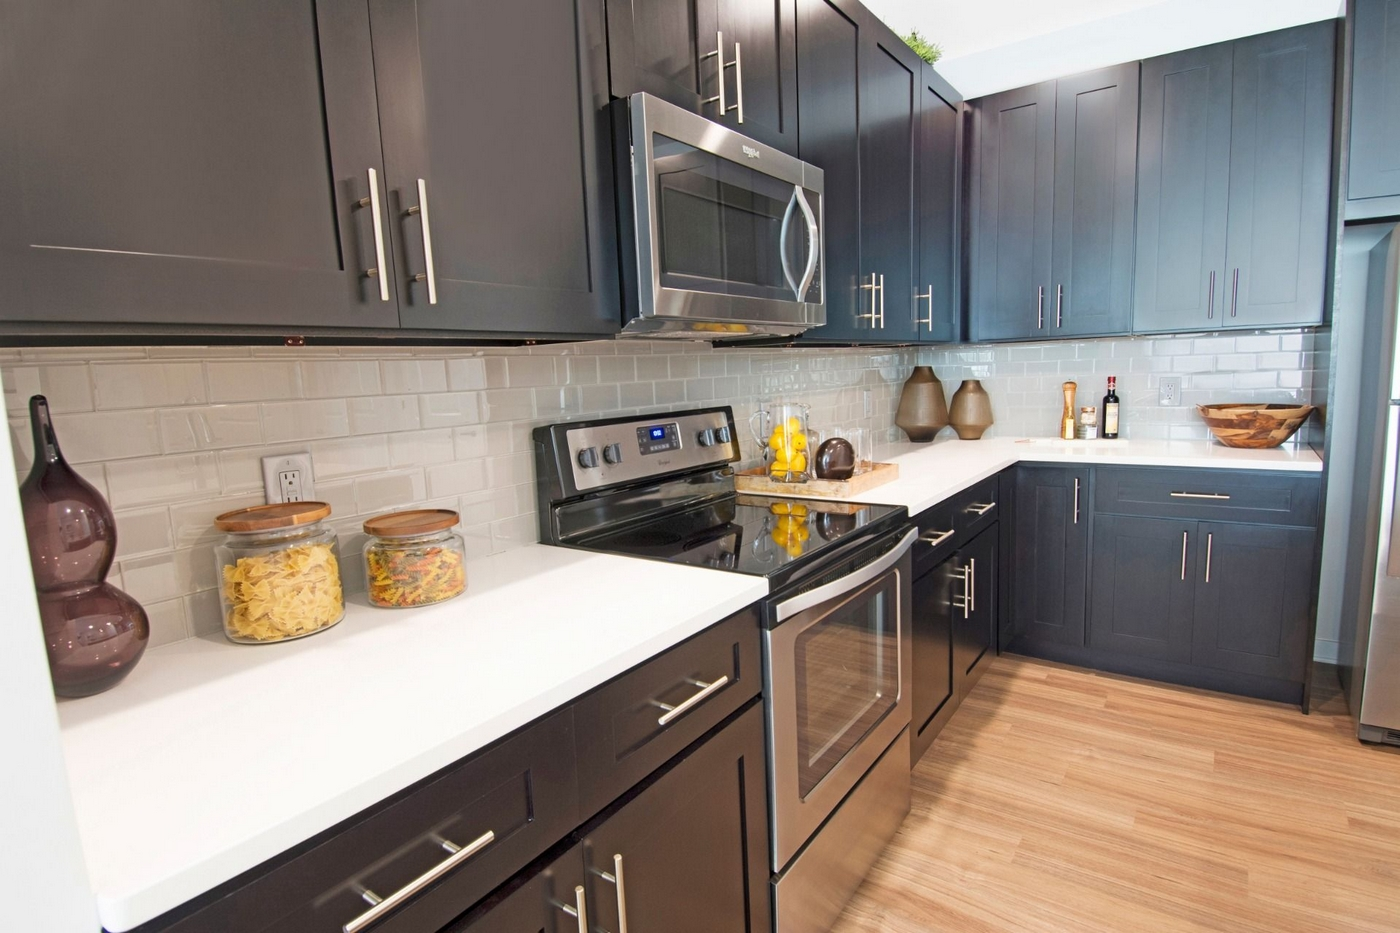 Large, open kitchen with lots of counter space